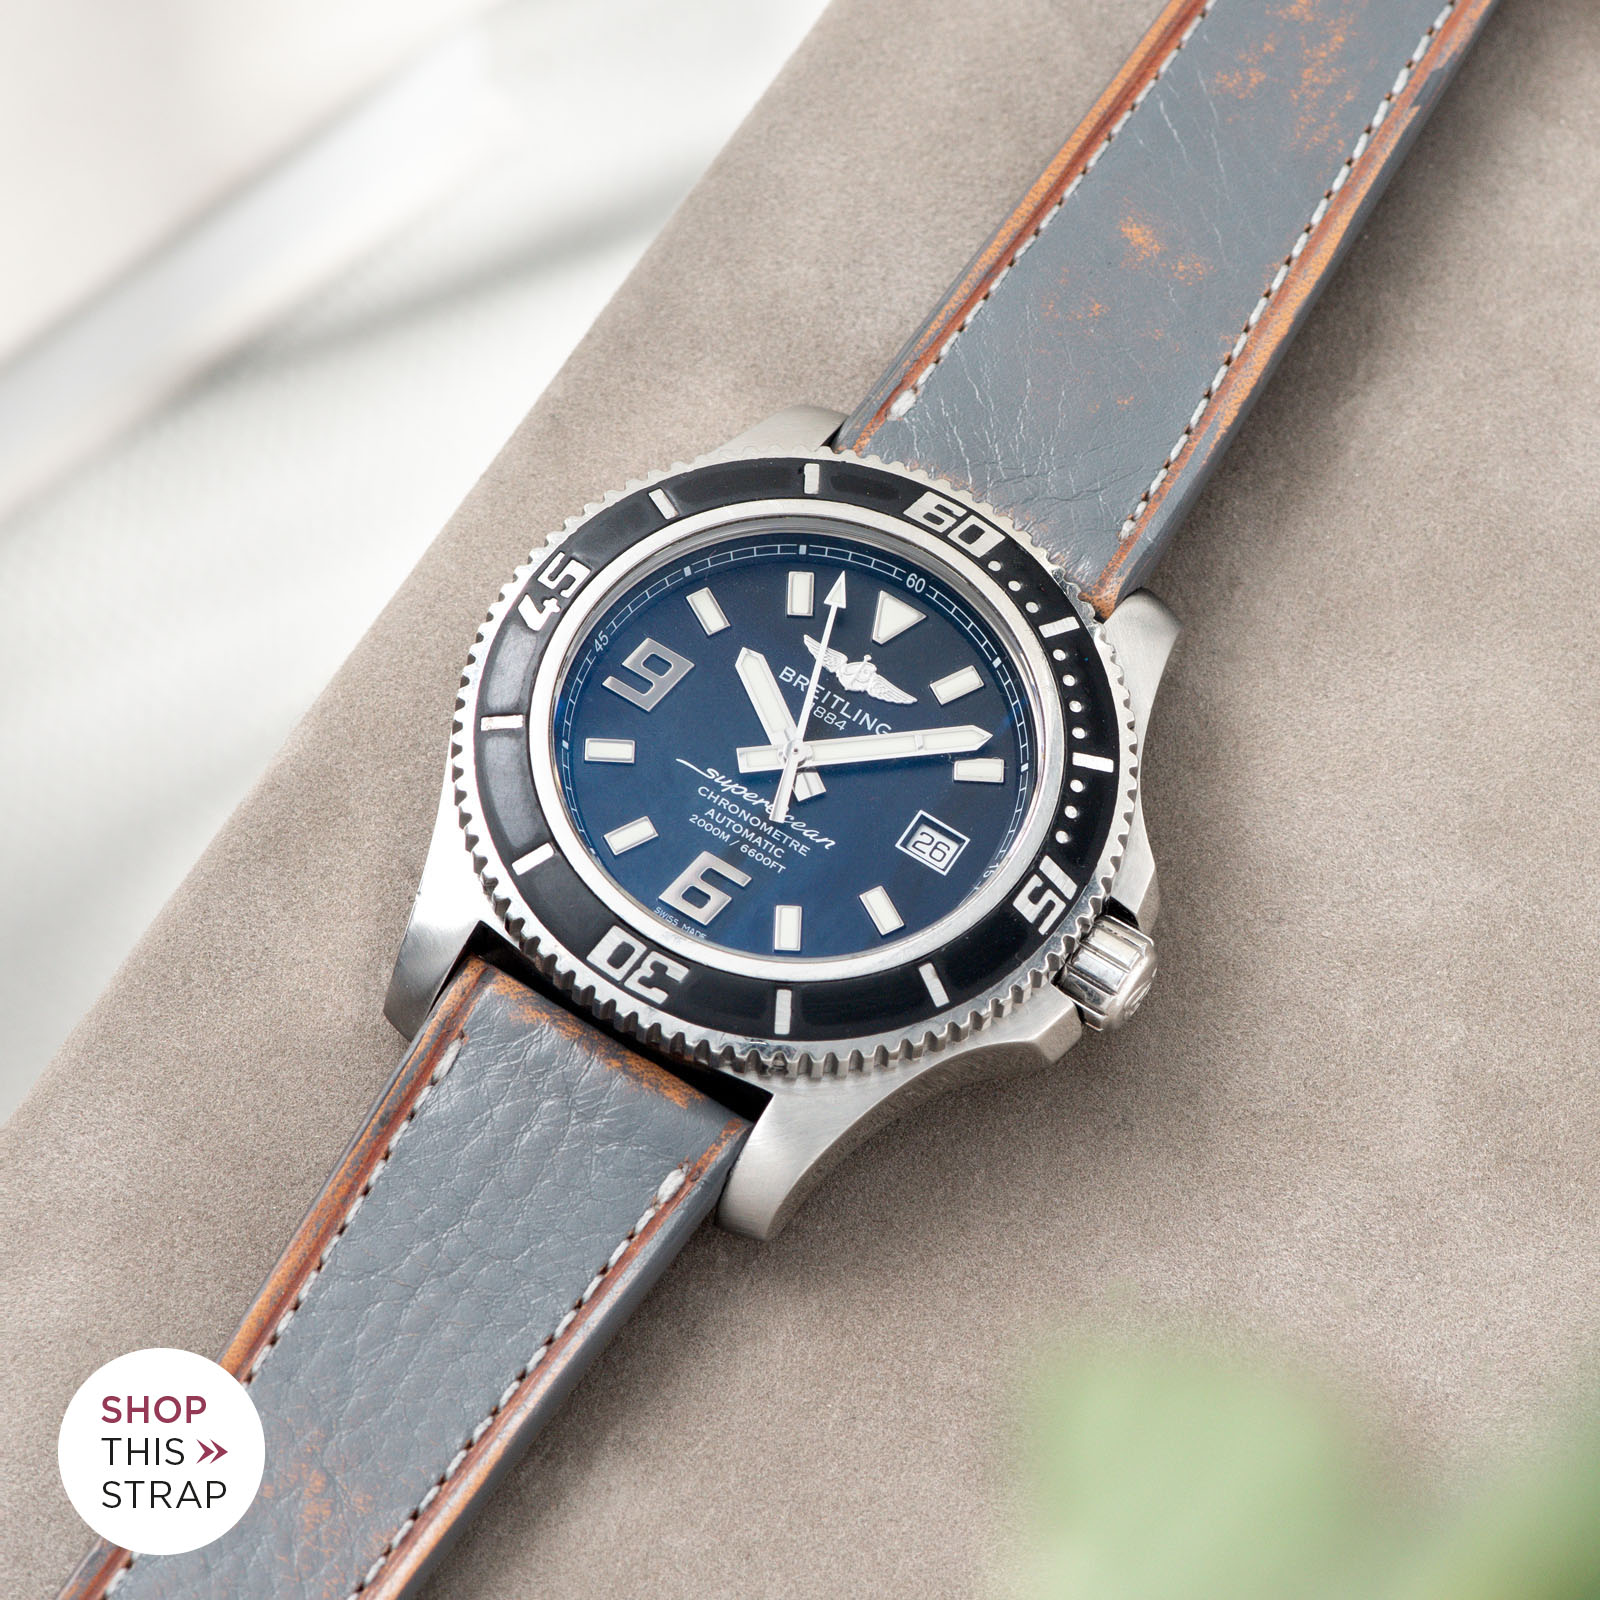 Bulang and Sons_Strap Guide_Breitling Superocean_Denim Blue Retro Leather Watch Strap